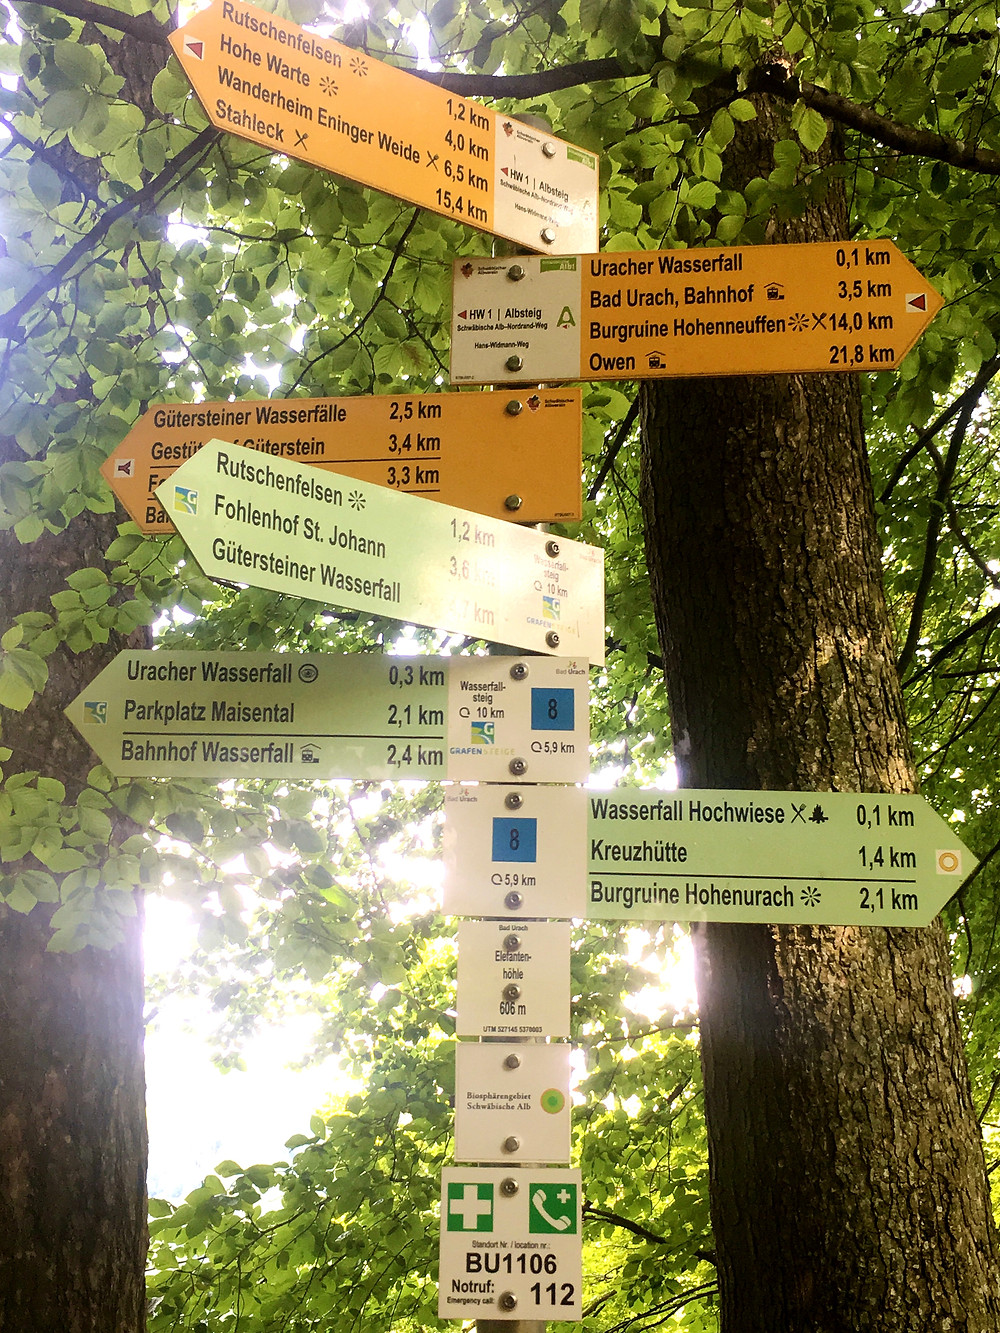 Hiking Directions post sign at Bad Urach, Germany